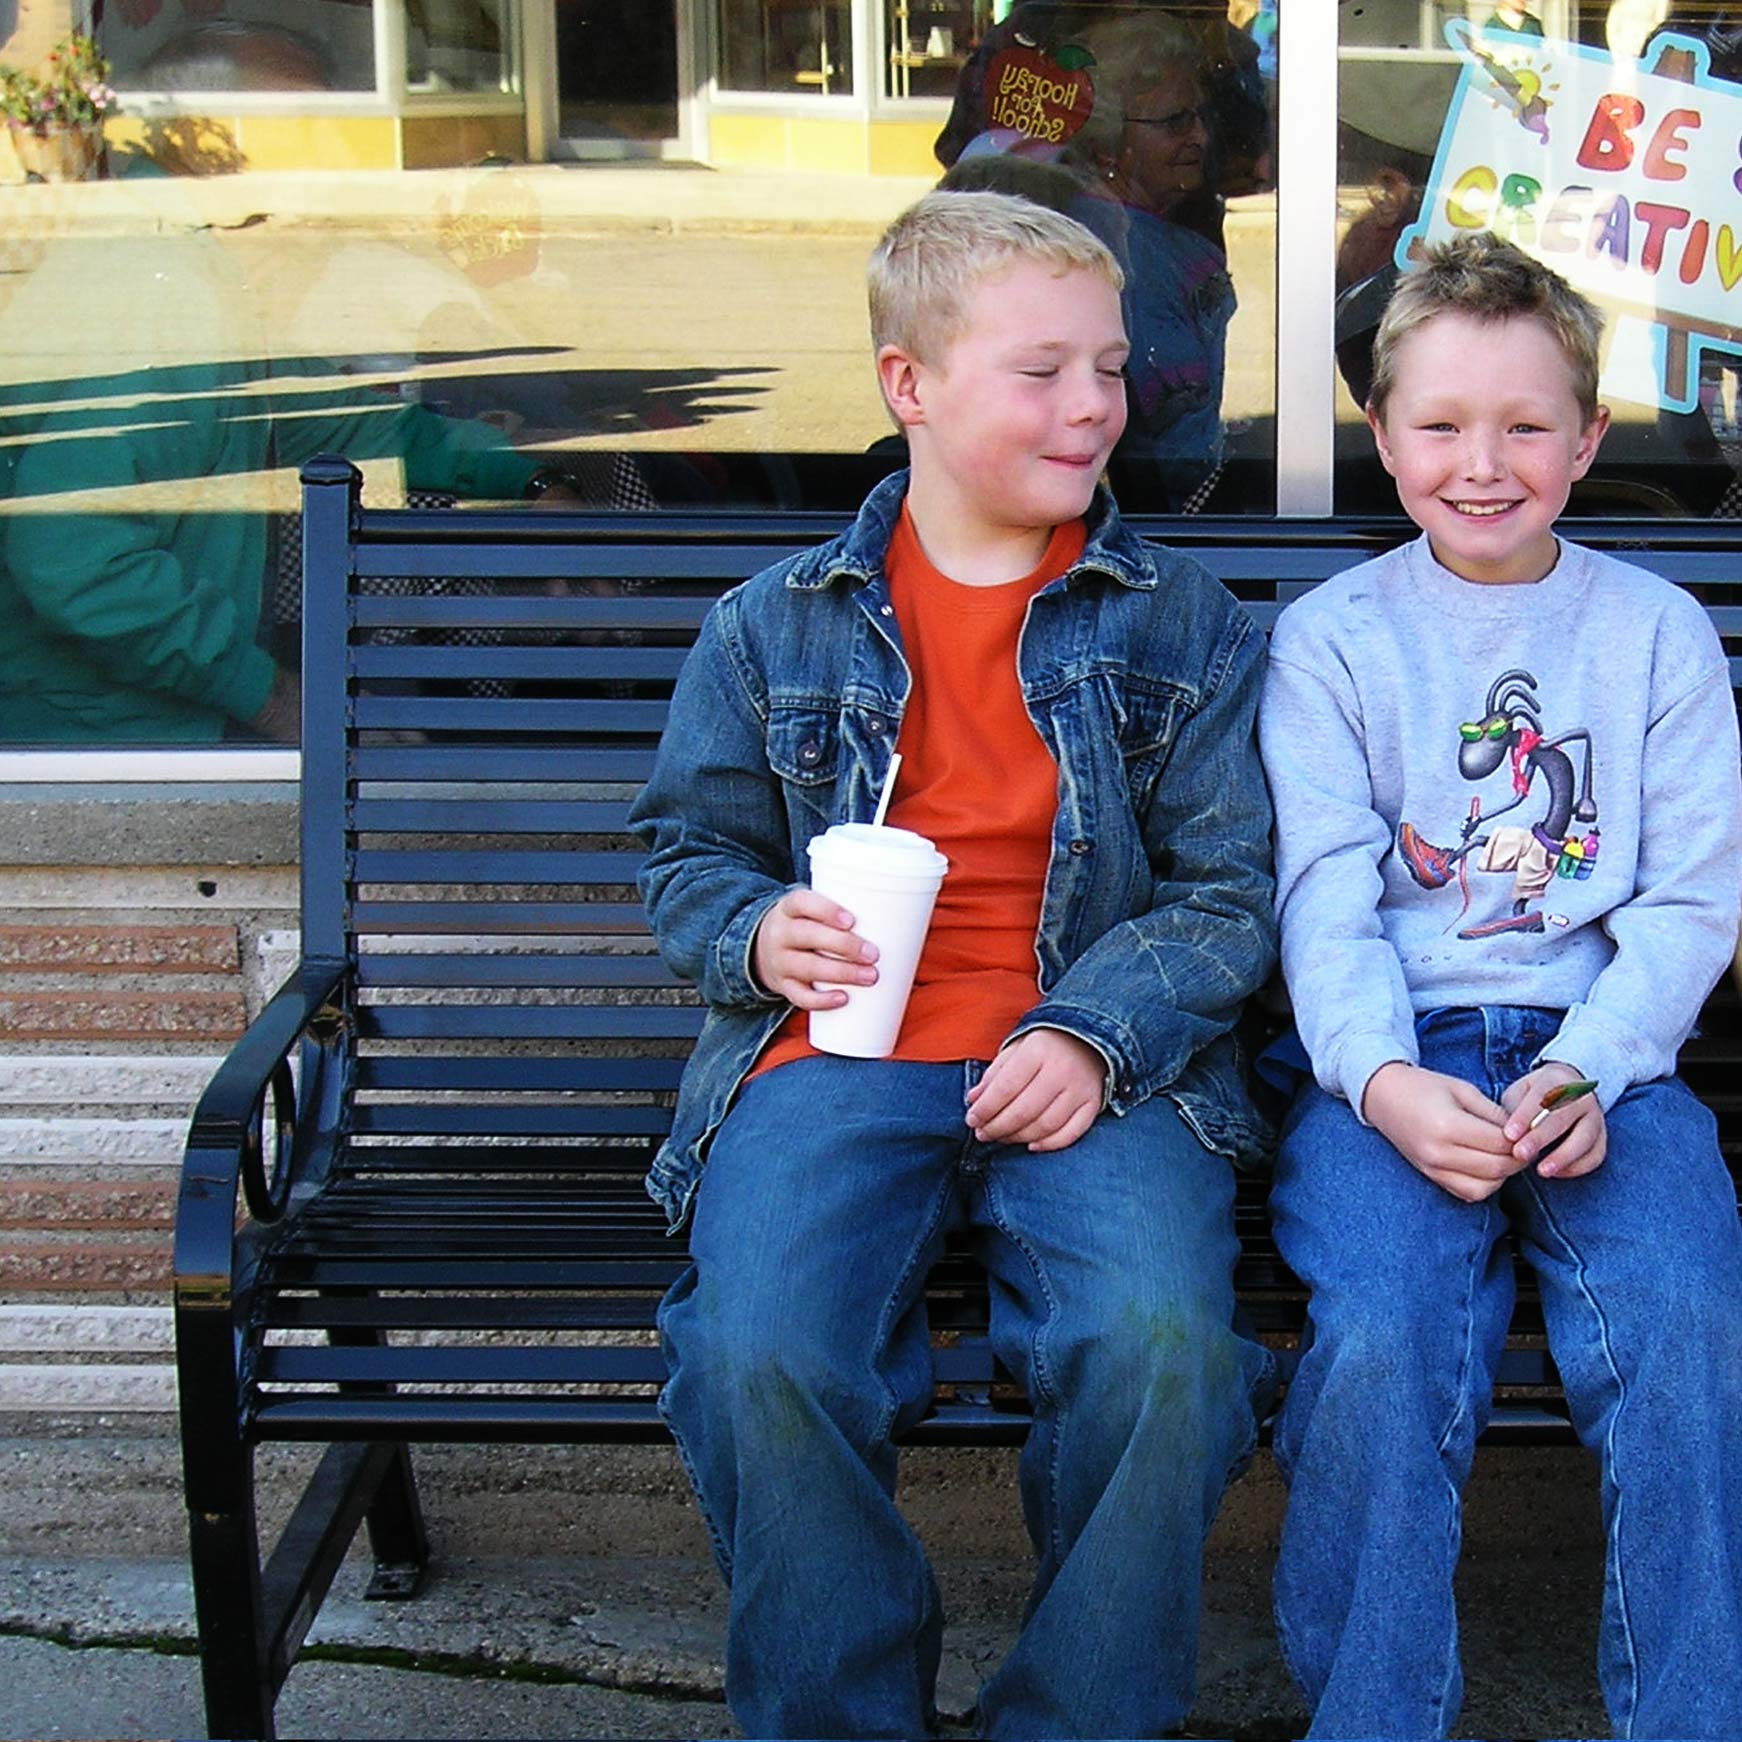 Friends spending time on a donated park bench from OCC Outdoors.